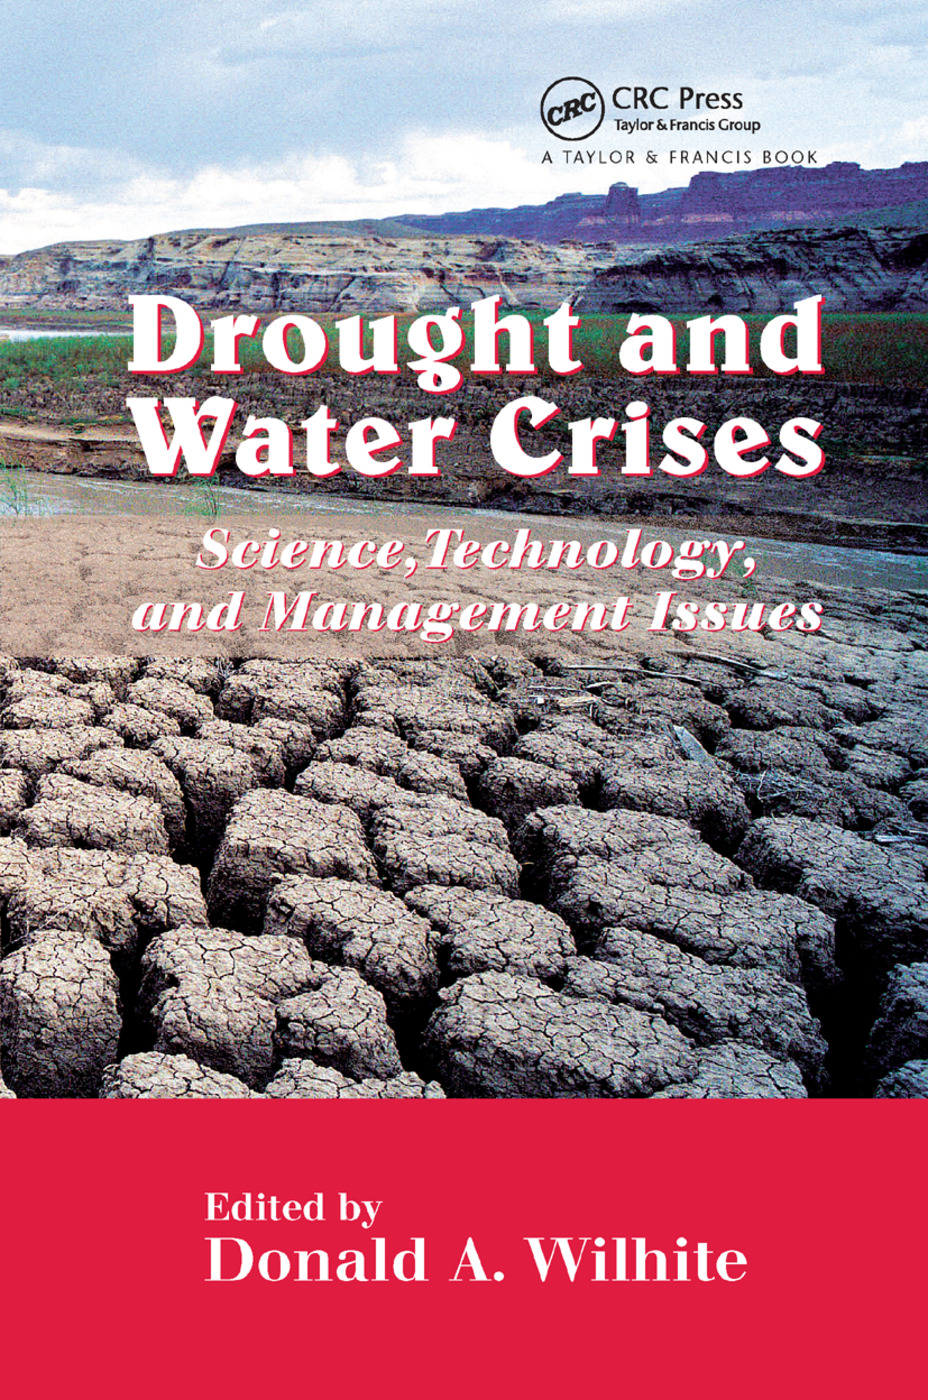 Drought and Water Crises: Science, Technology, and Management Issues, 1st Edition (Paperback) book cover